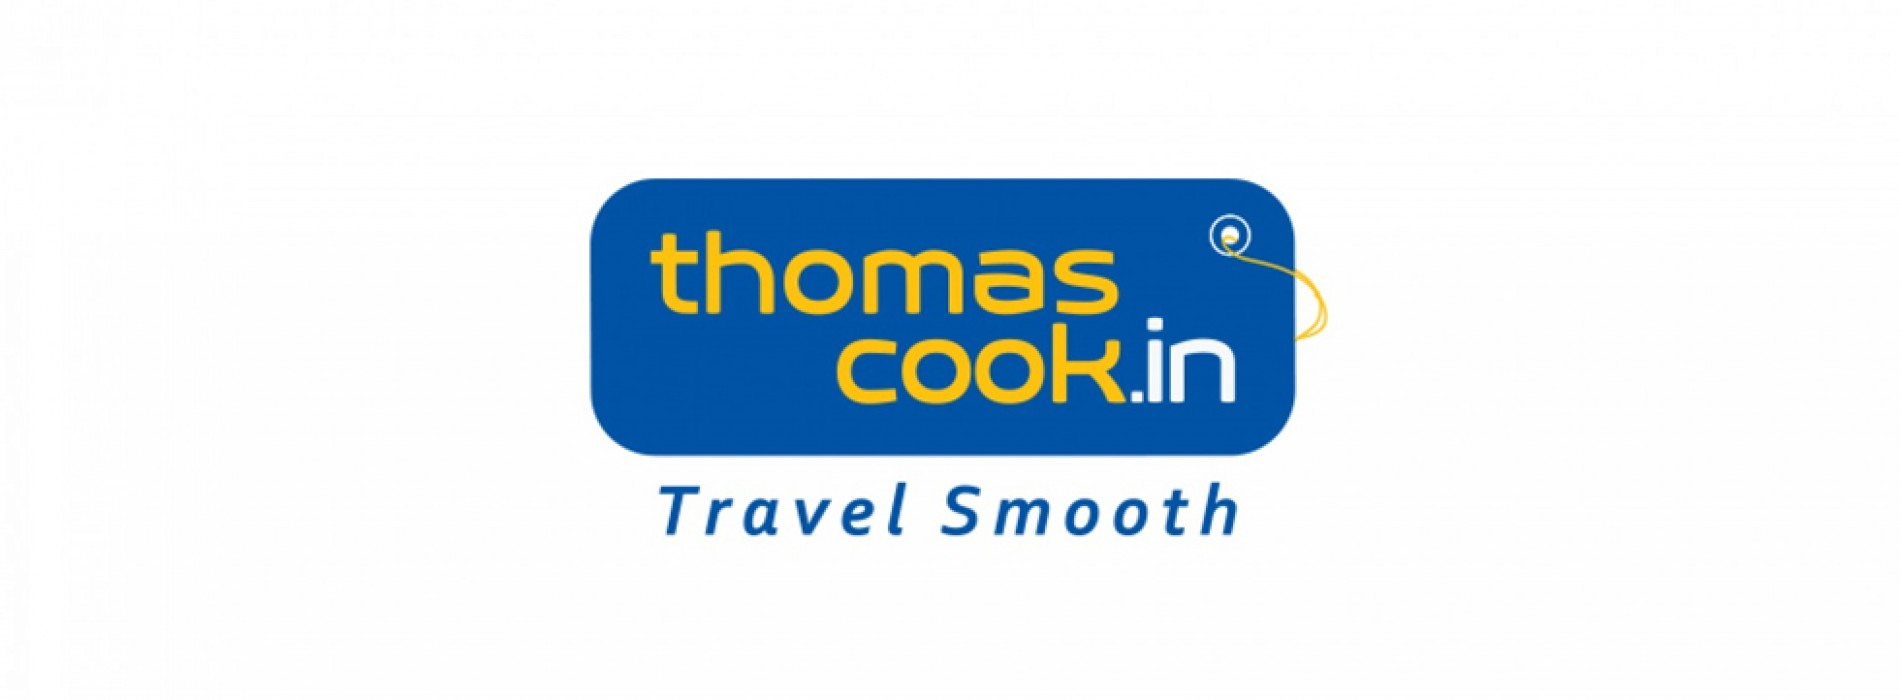 Thomas Cook India goes Local to target the strong leisure segment in smaller catchment markets